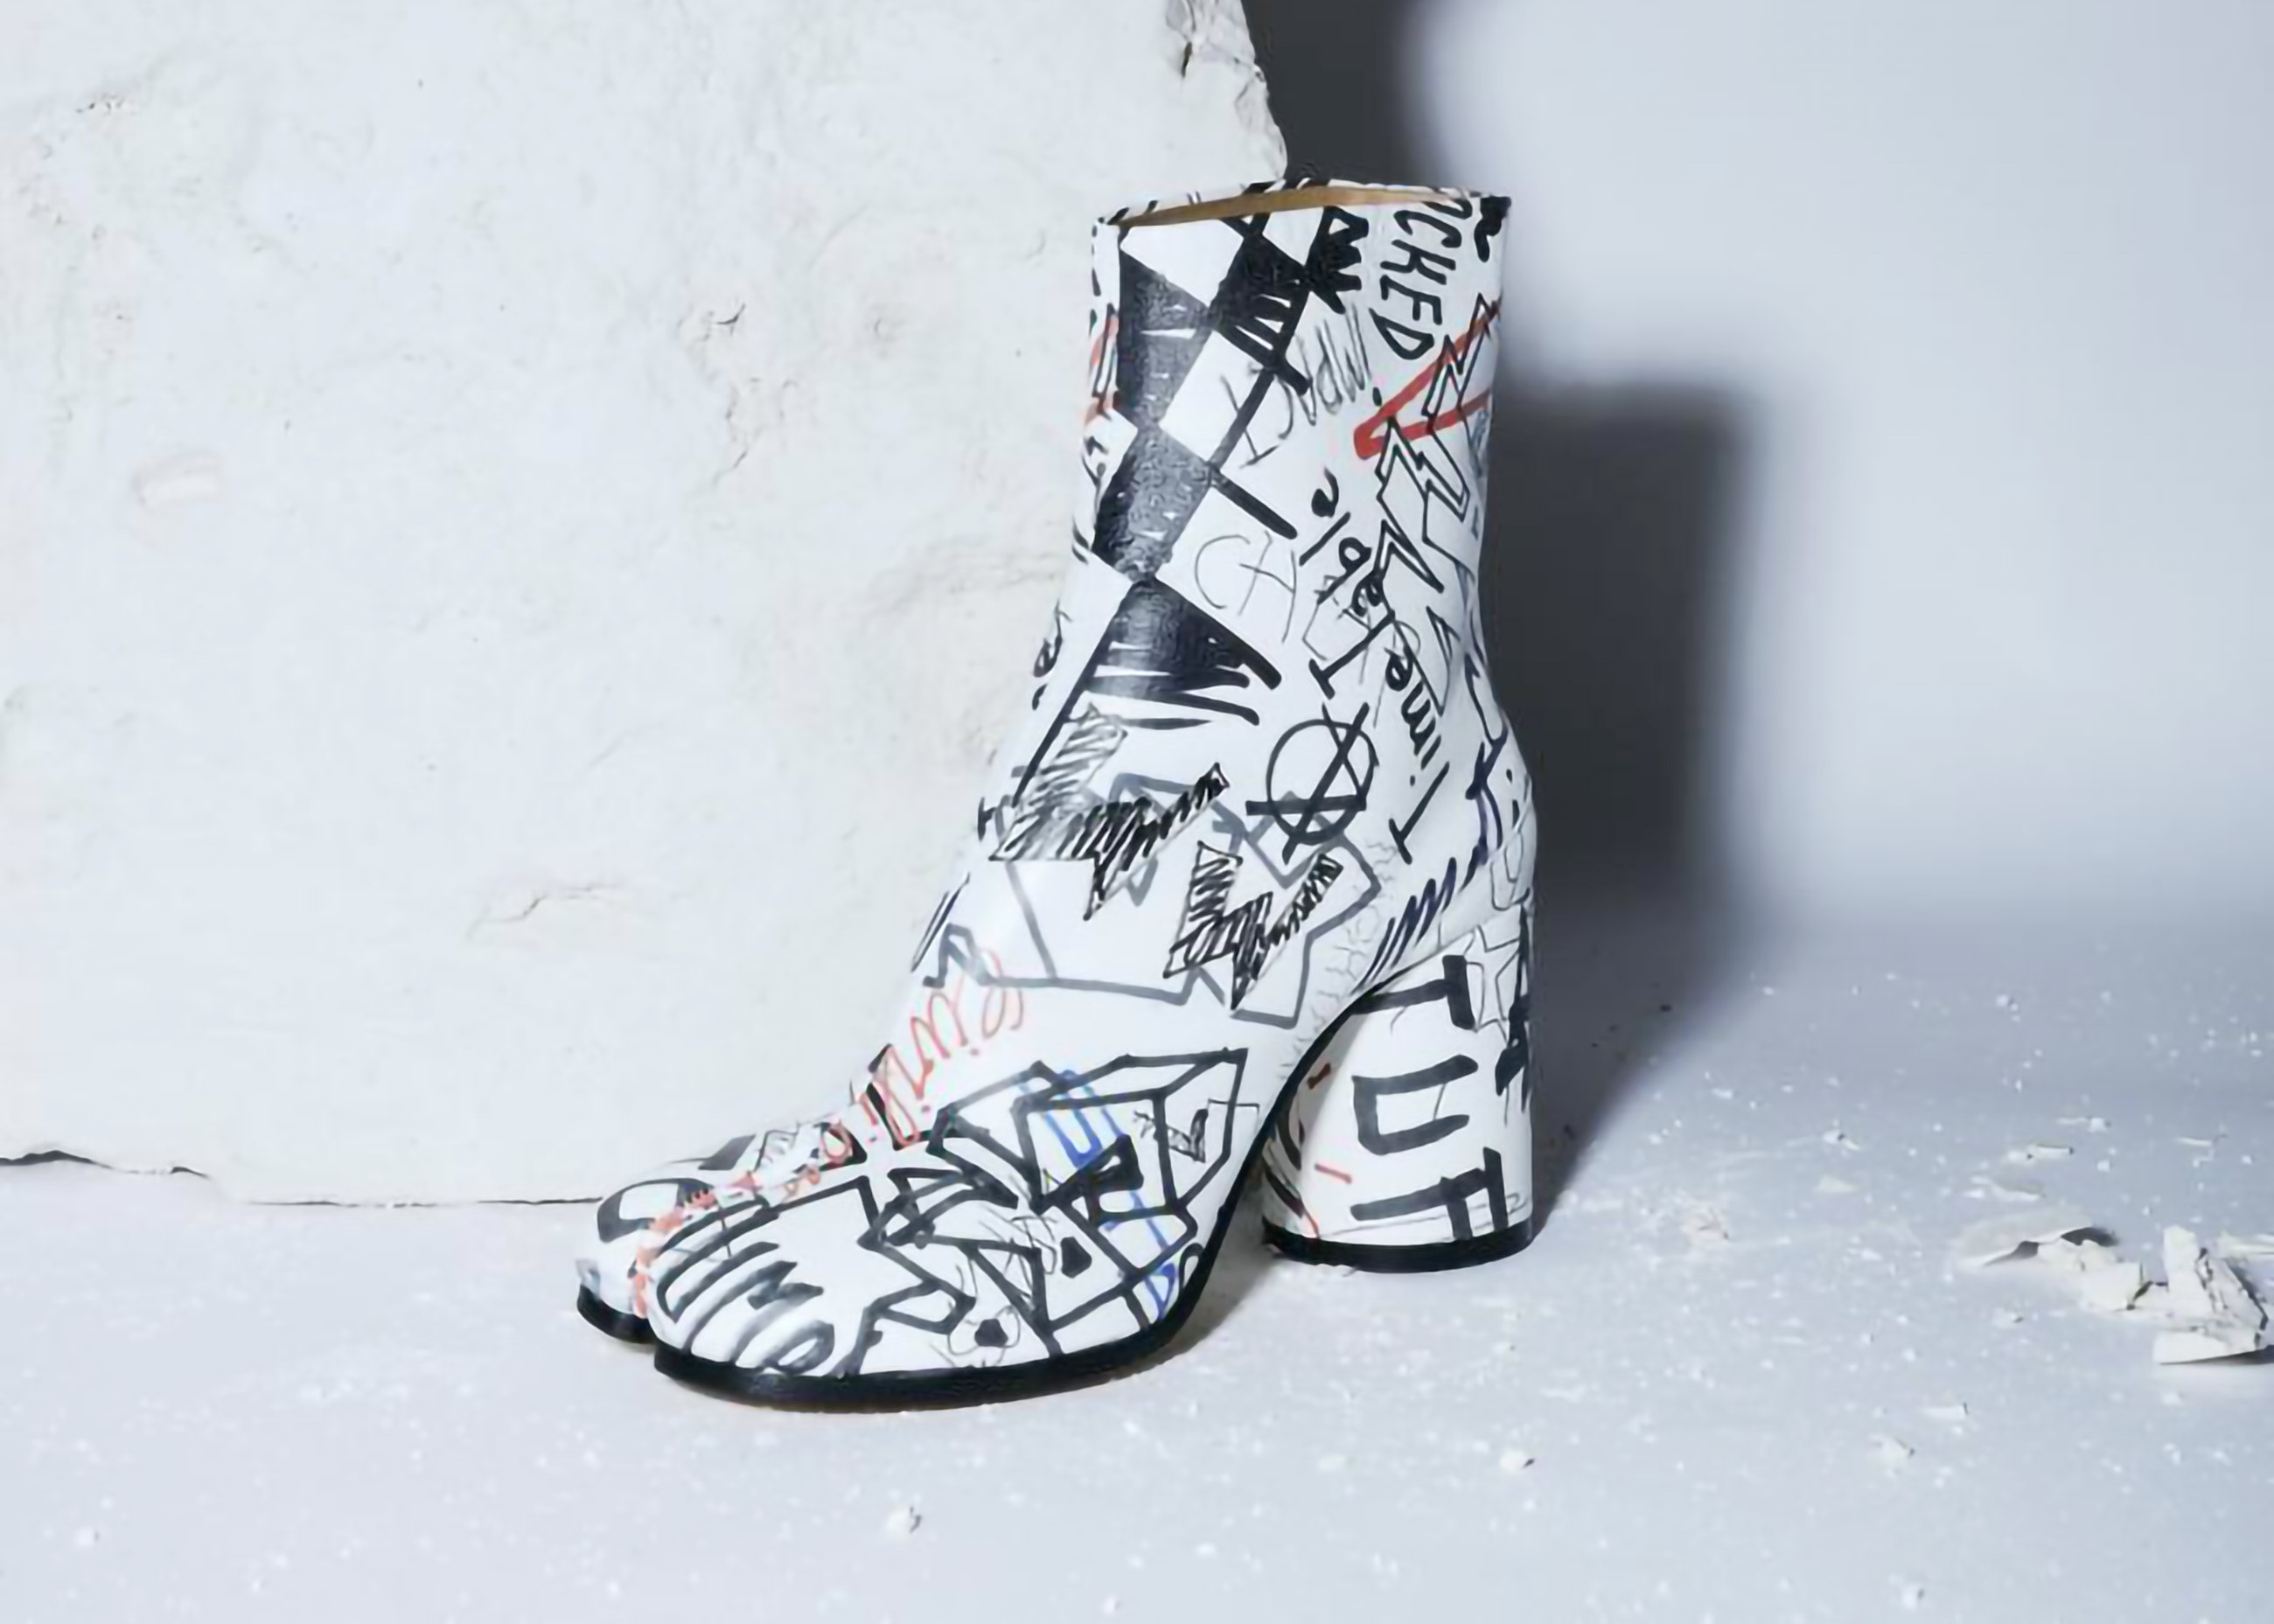 Maison Margiela presents a vandalised version of the Tabi Boots